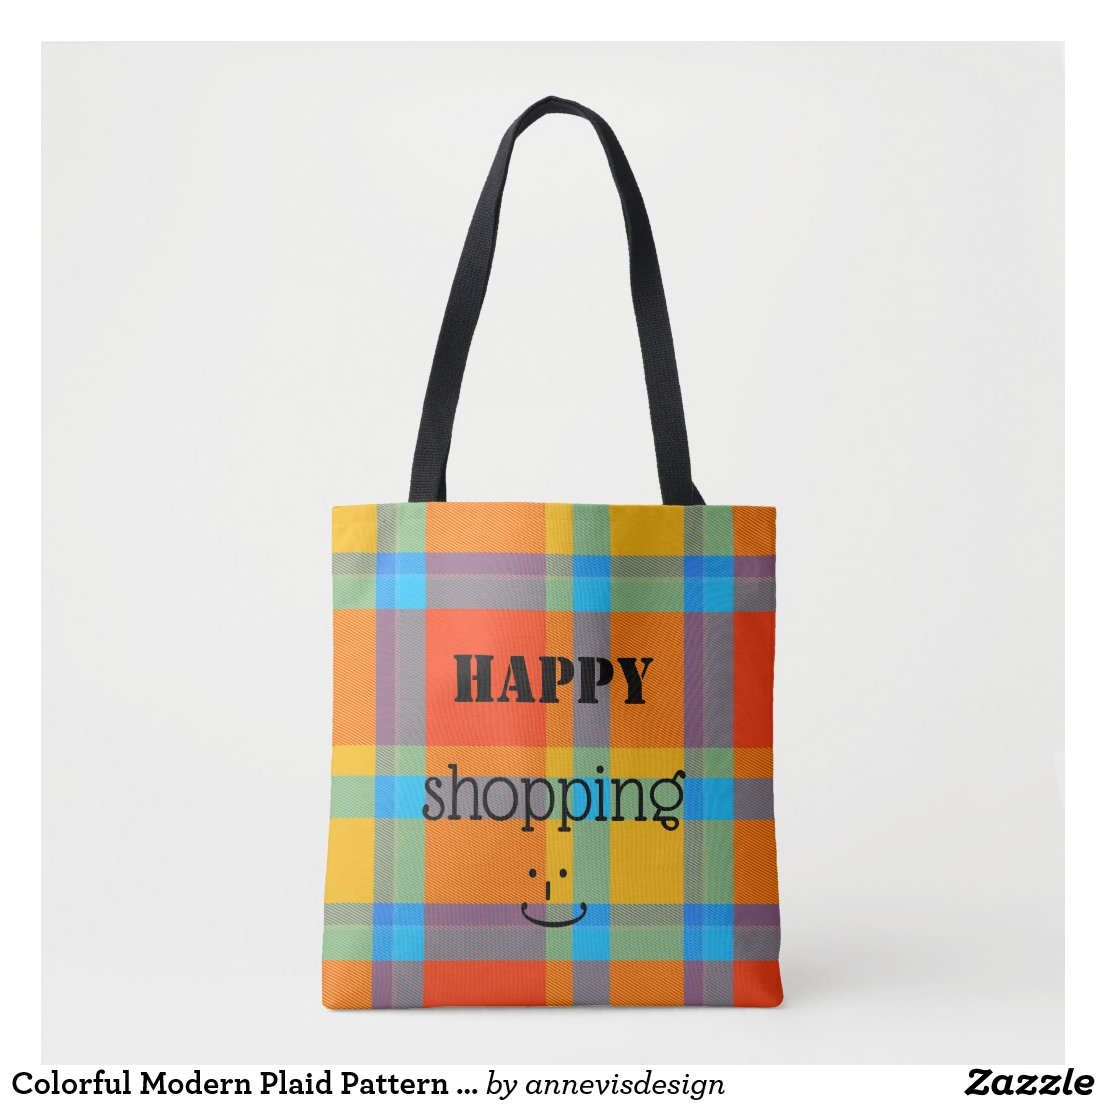 Colorful Modern Plaid Pattern Bag